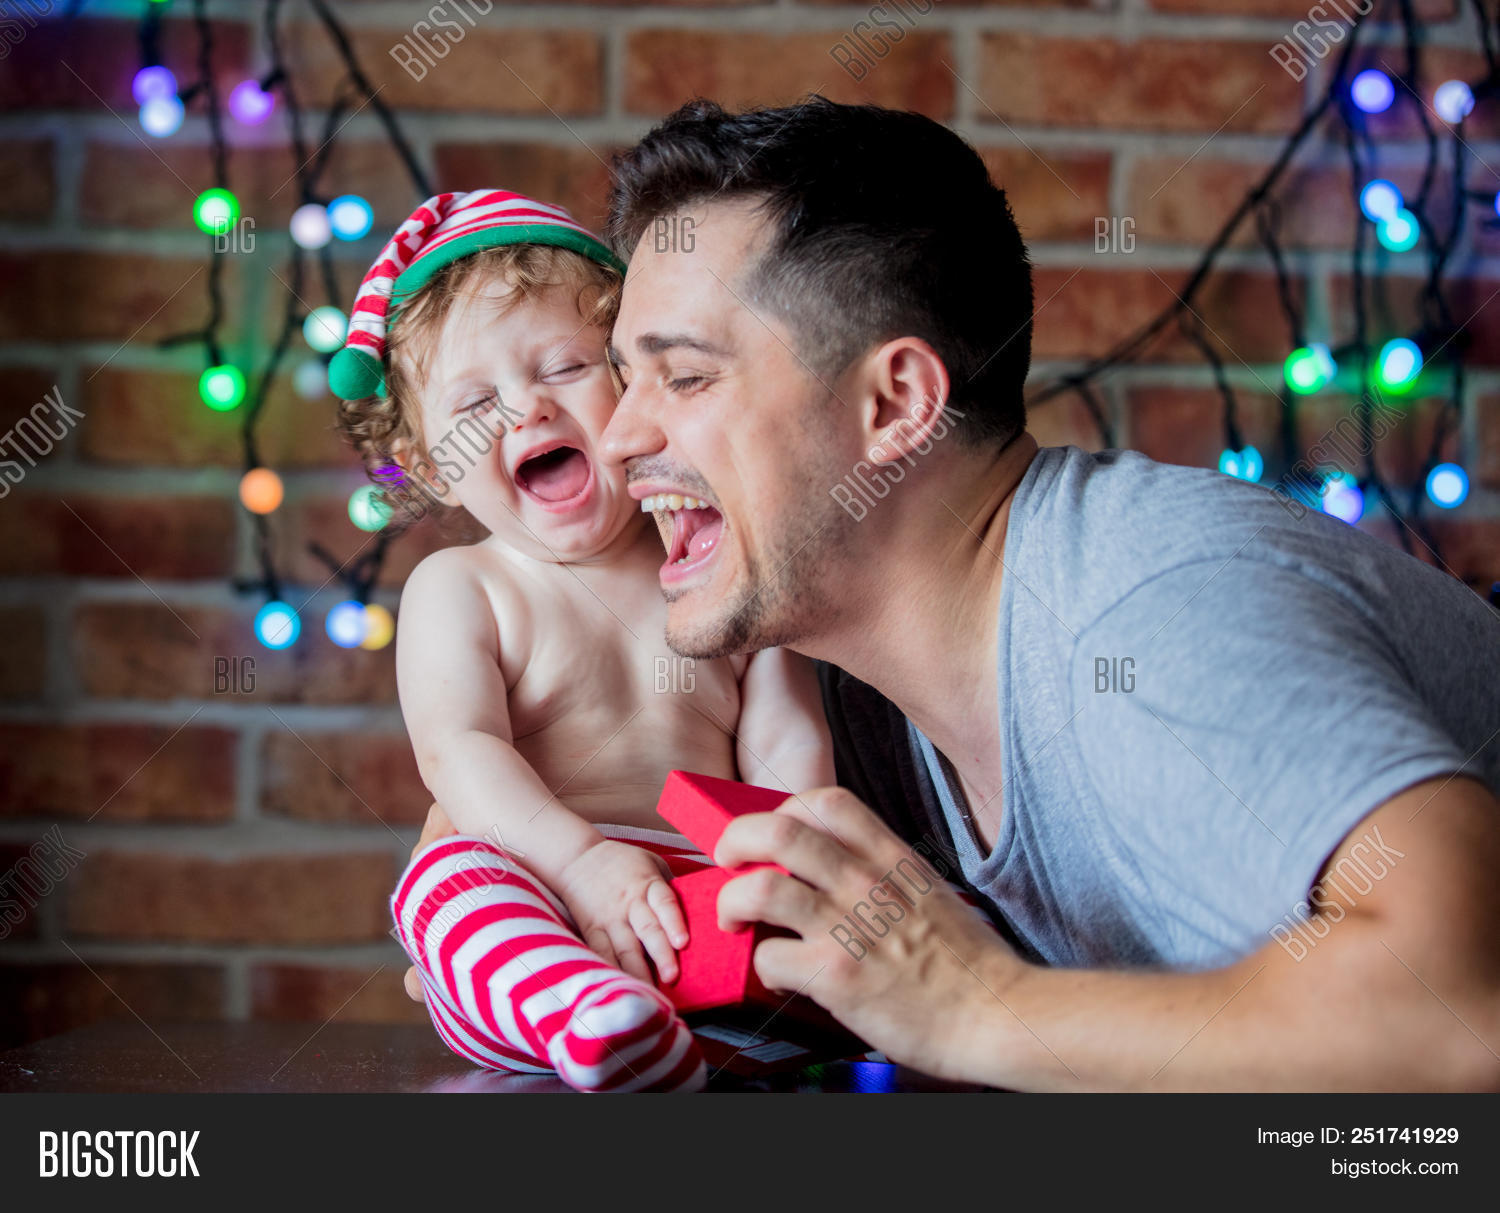 0bd69dd2df97b Beautiful little baby boy in elf hat and father with gift box and fairy  lights on background. Christmas time season image